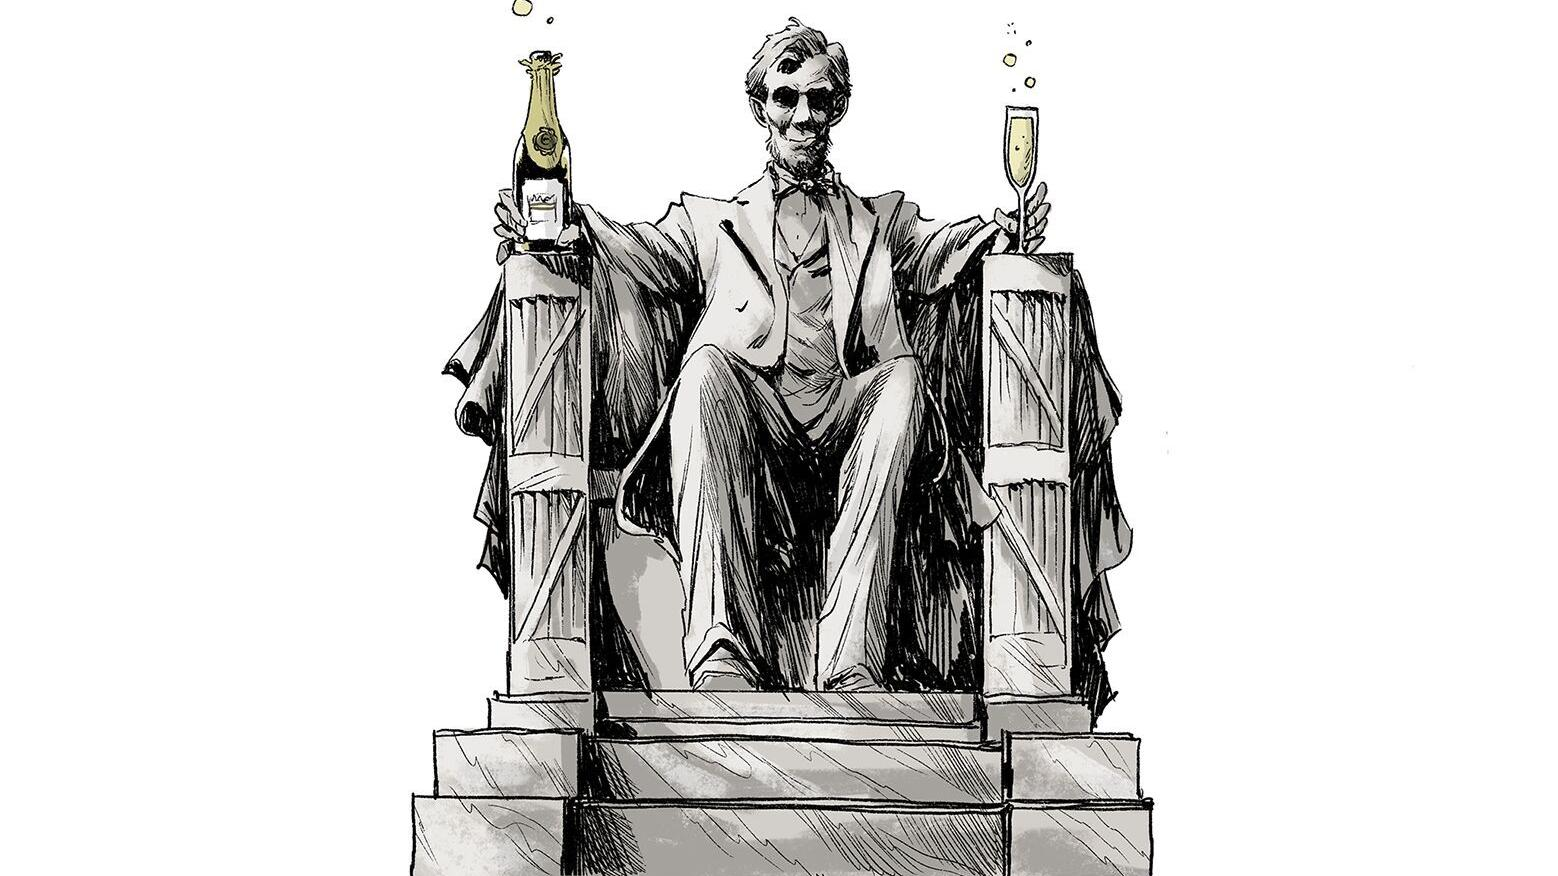 Bret Stephens: Lincoln knew in 1838 what 2021 would bring